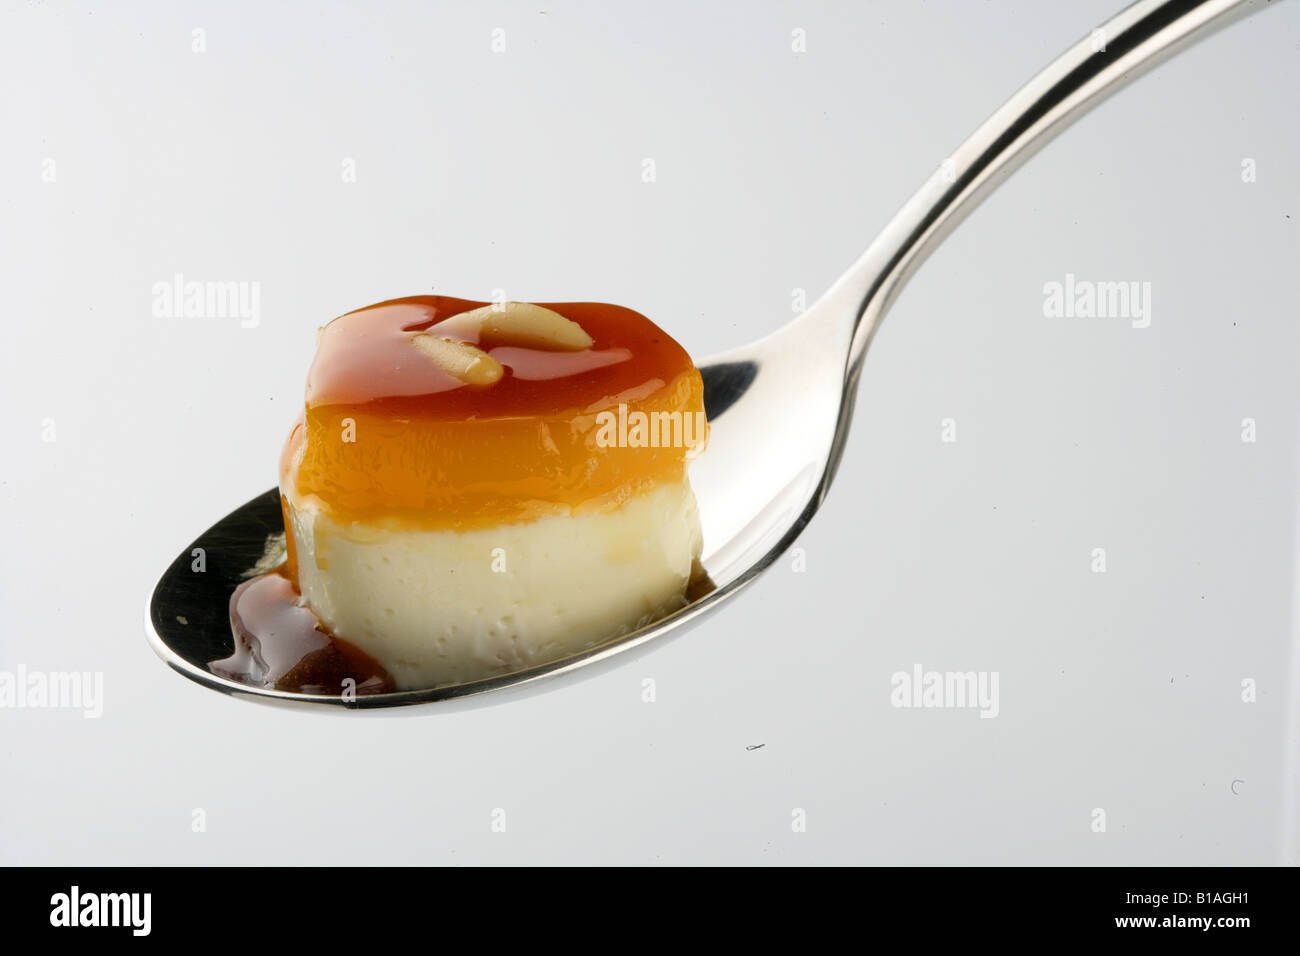 Cheese cream with tocinillo de cielo, caramel syrup and pine nuts on a spoon - Stock Image